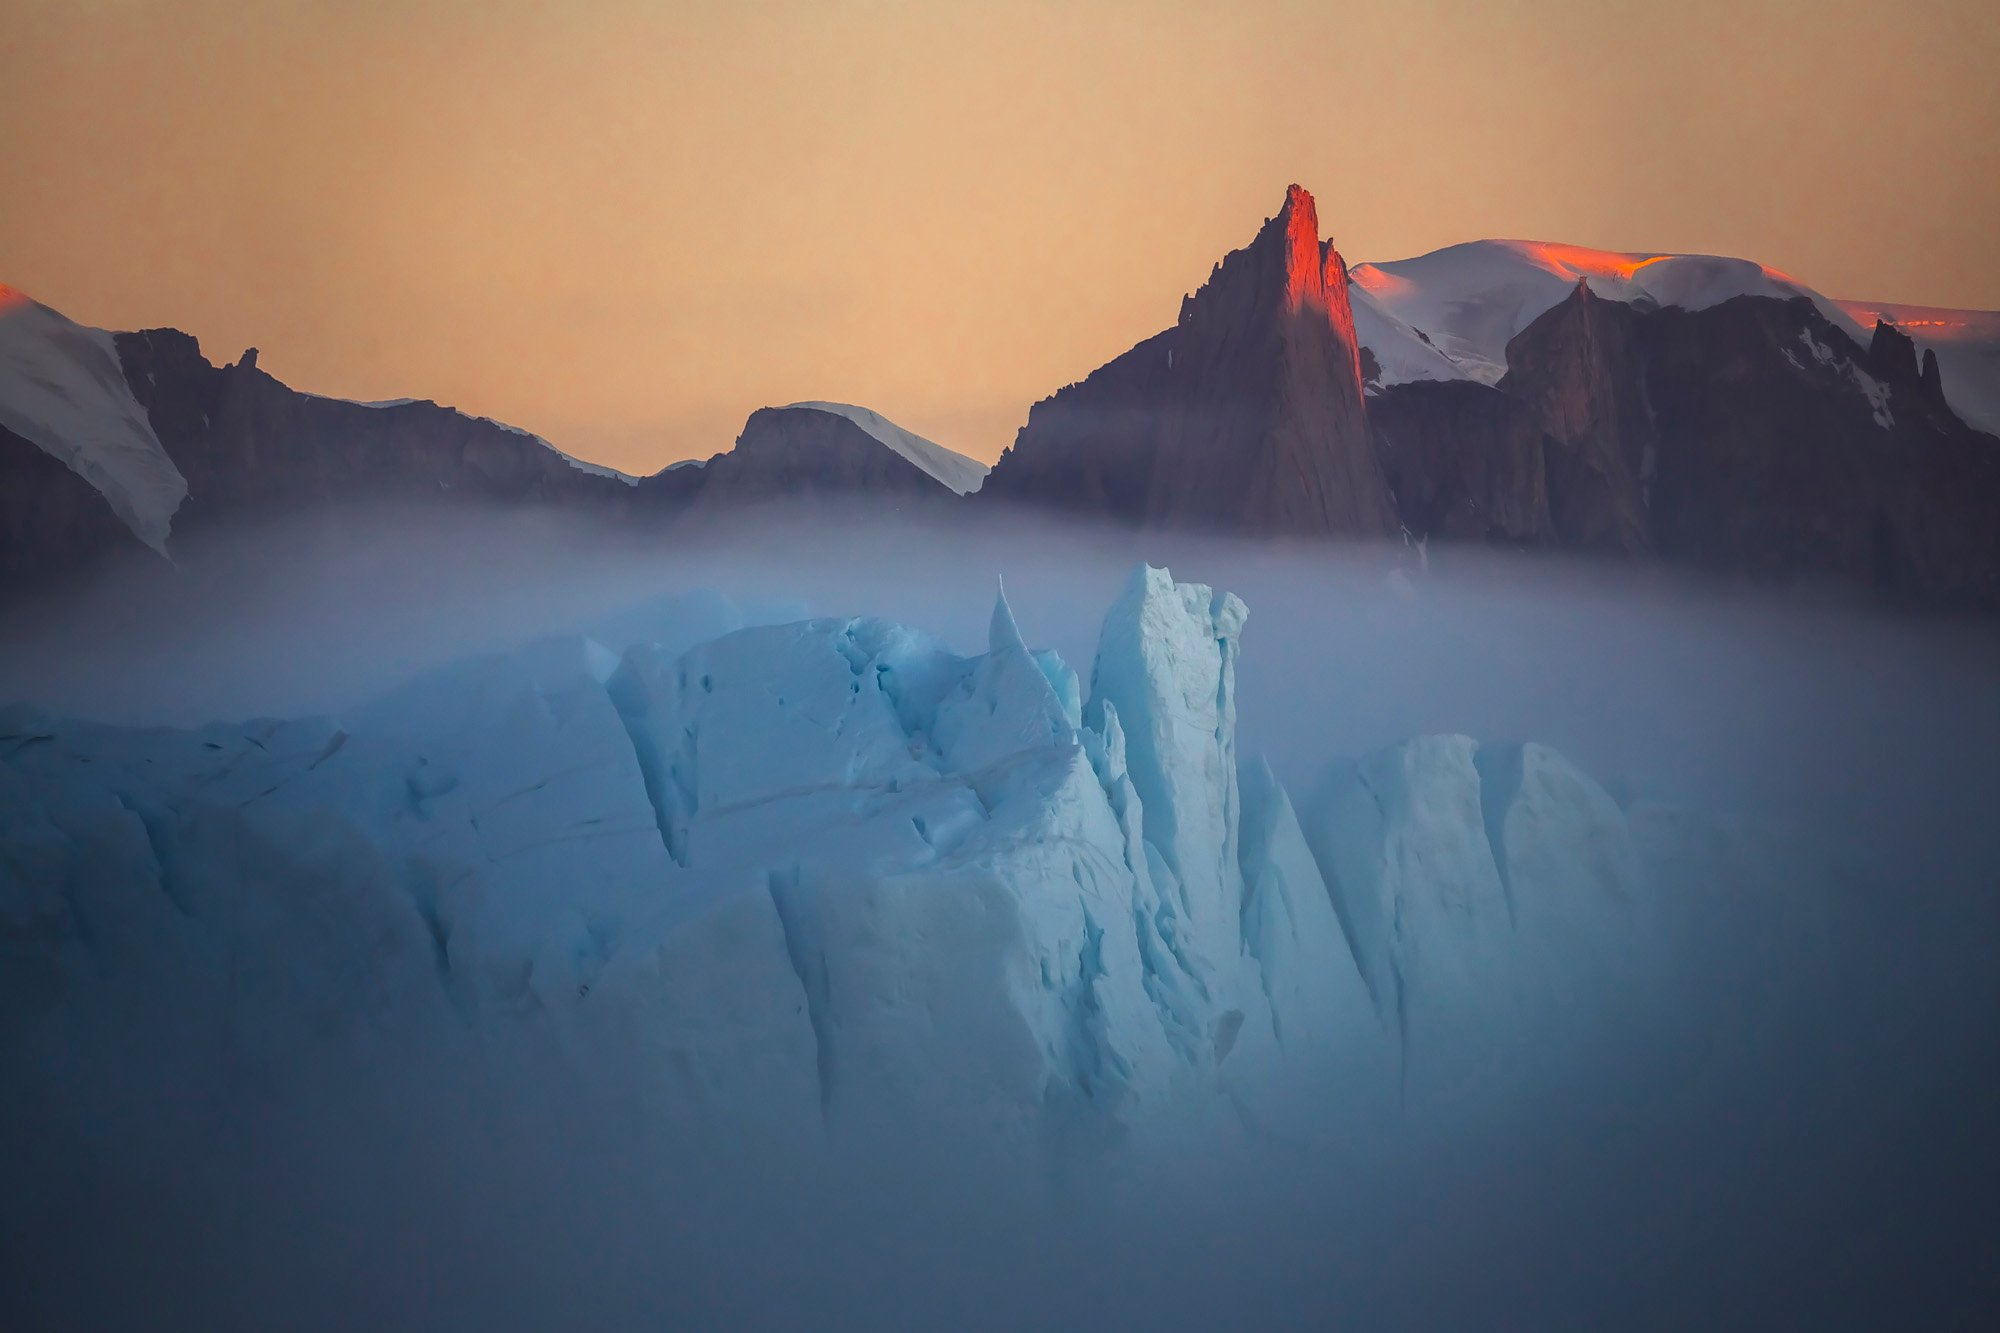 """""""Fog over the iceberg in Greenland. A very rare natural phenomenon. This is a huge iceberg that swam past the coast, shrouded in fog."""" Image: Vladimir Alekseev/www.tpoty.com"""